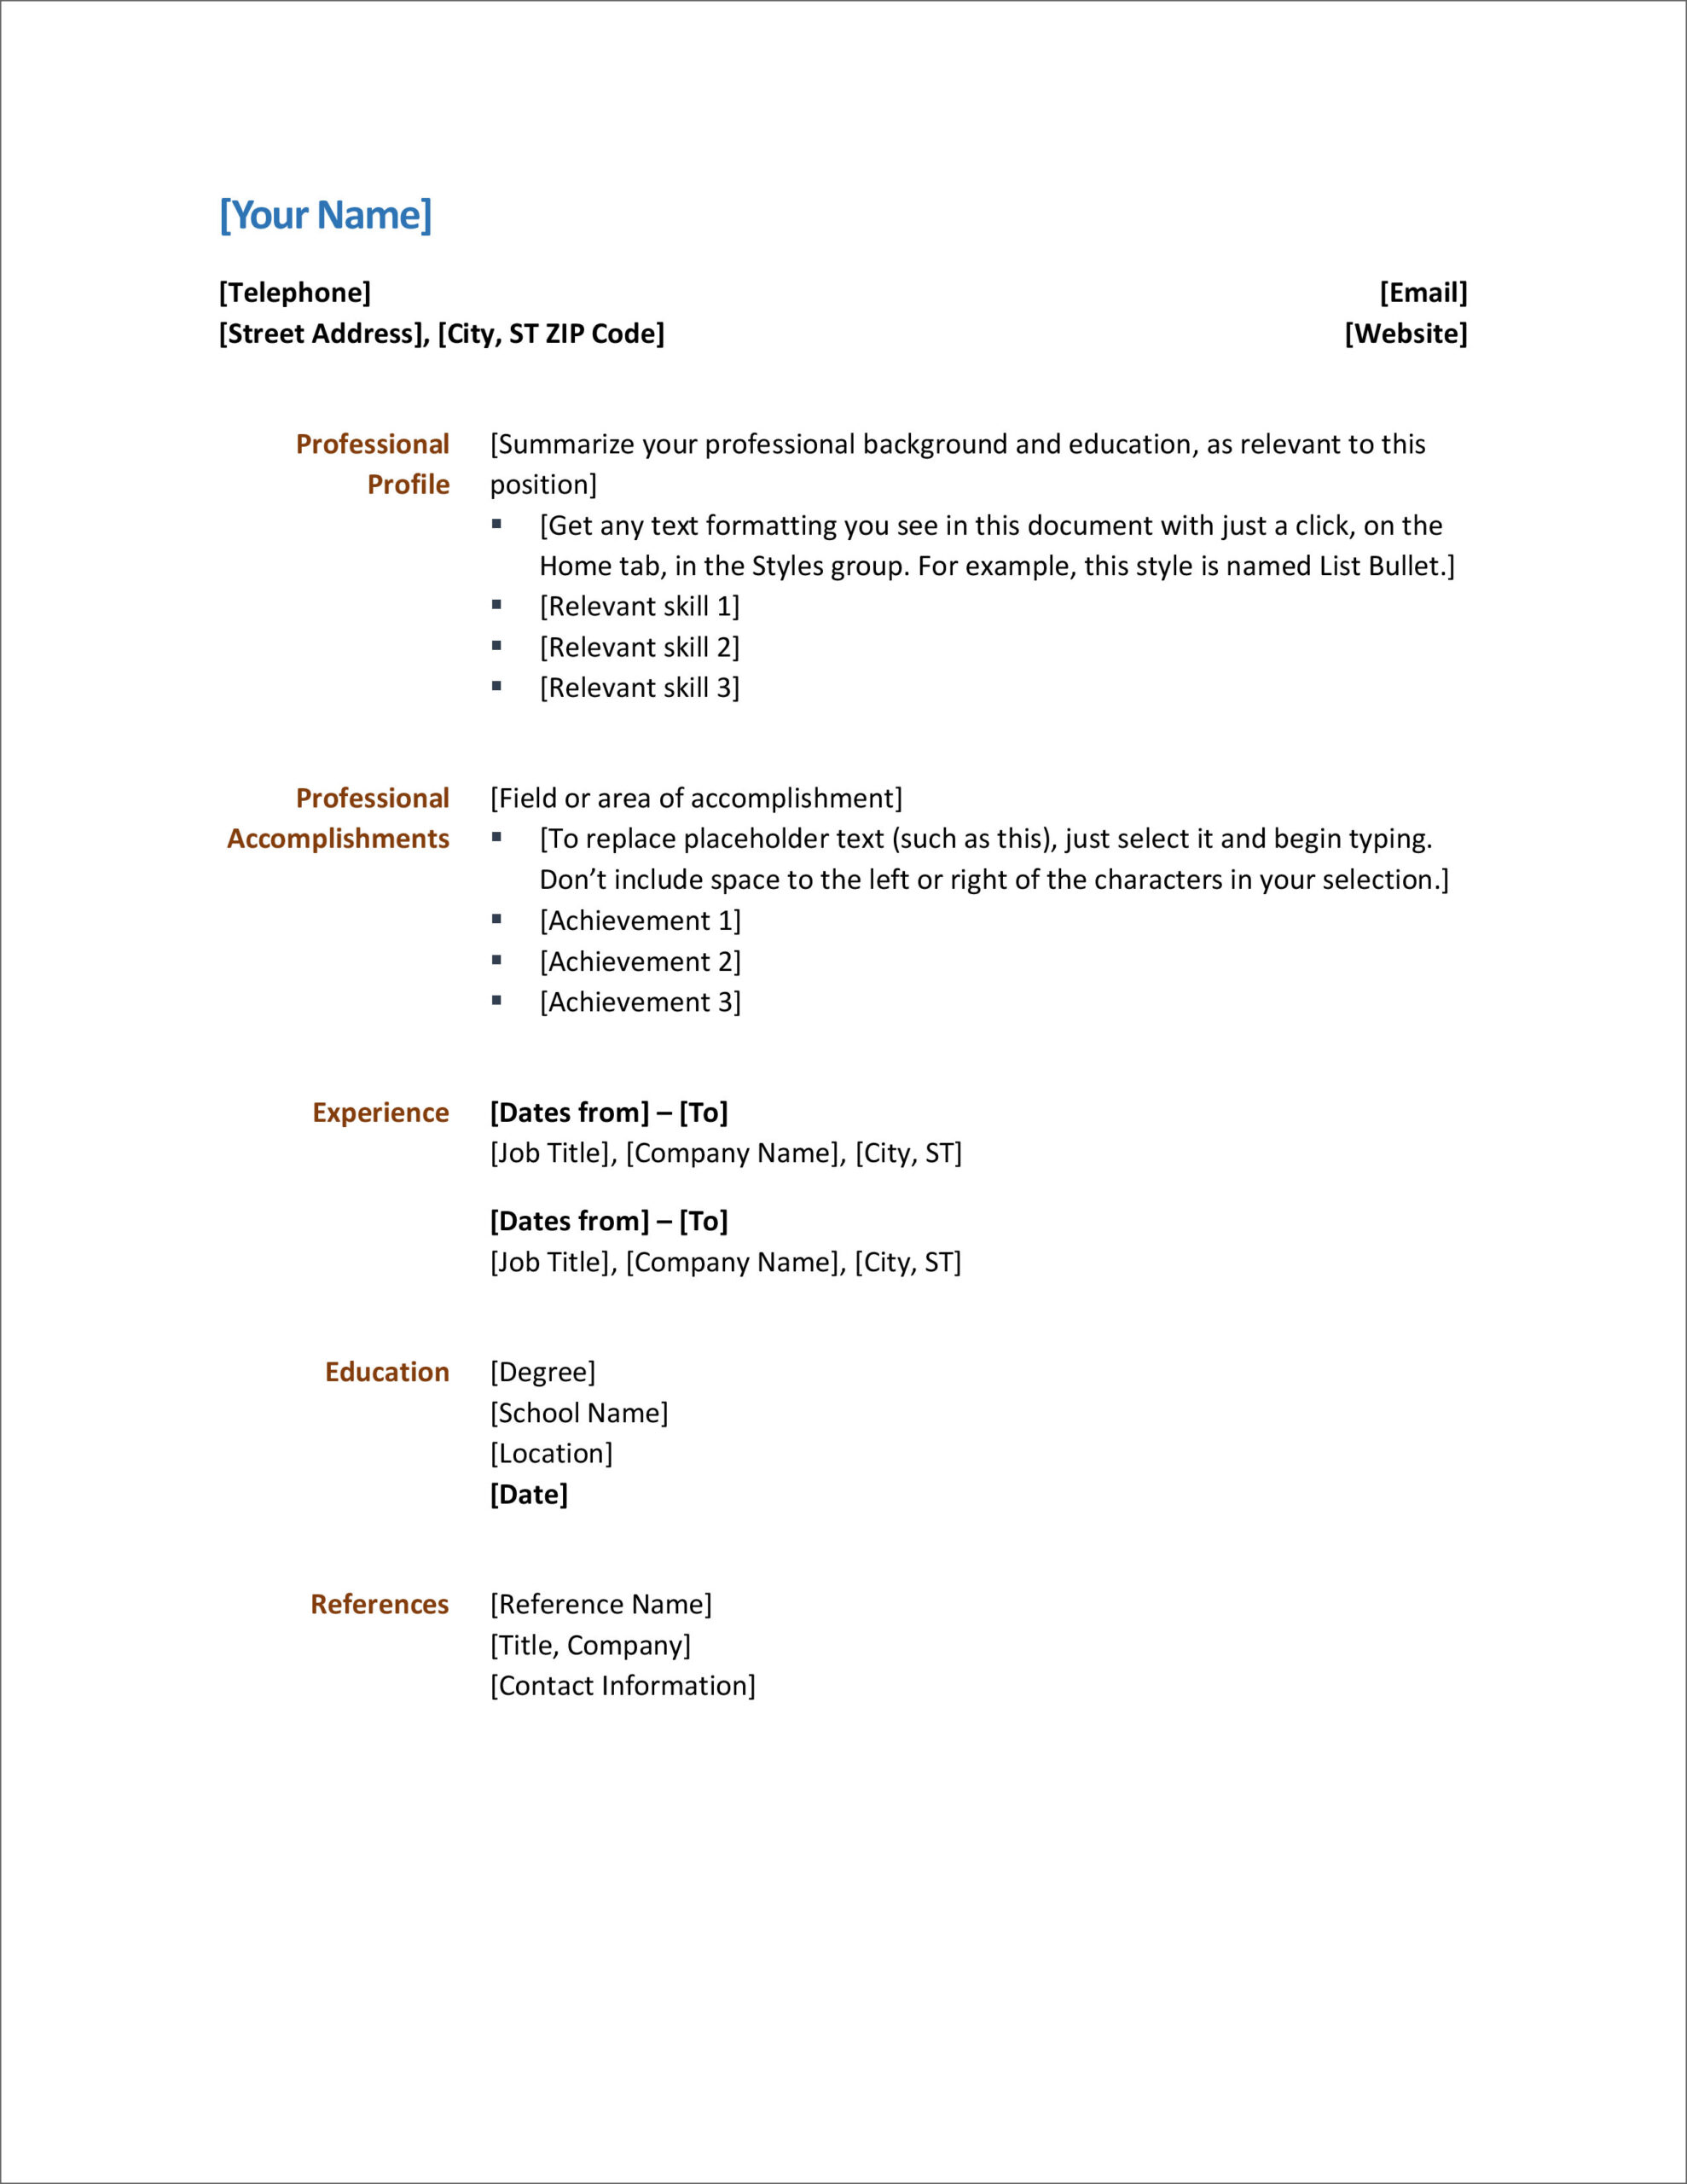 free modern resume cv templates minimalist simple clean design basic examples word Resume Basic Resume Examples Word